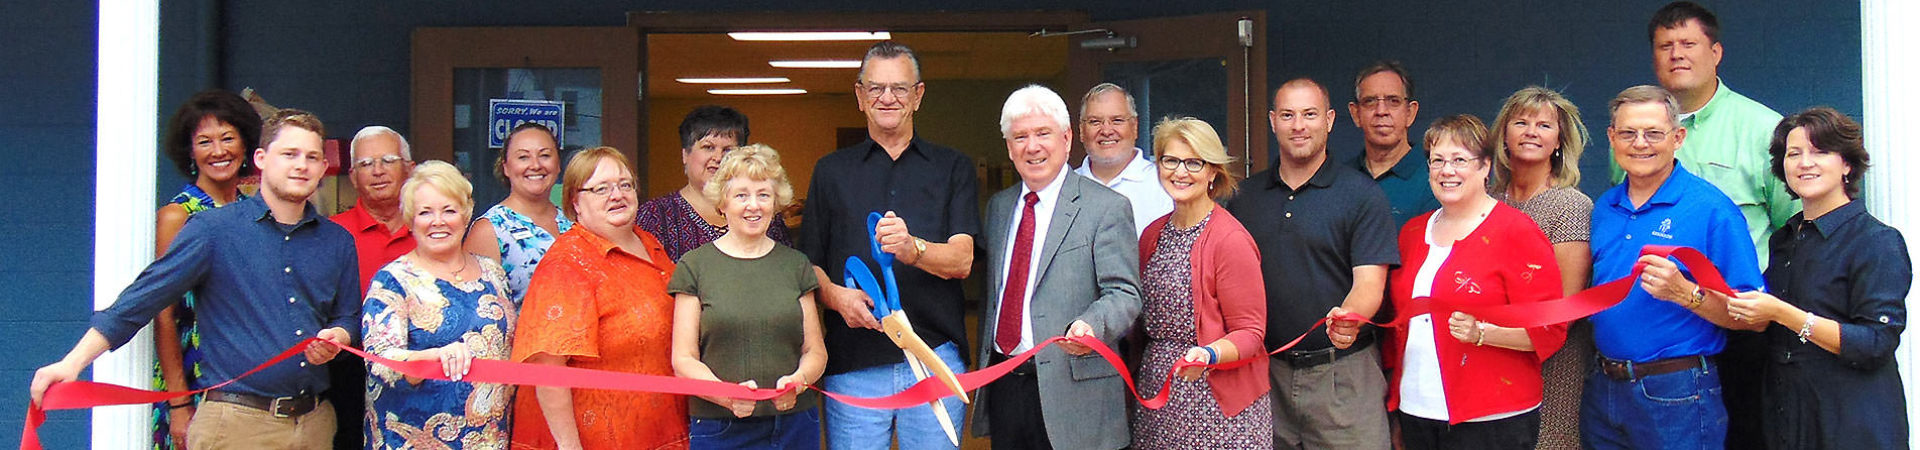 Batesville Food Pantry ribbon cutting